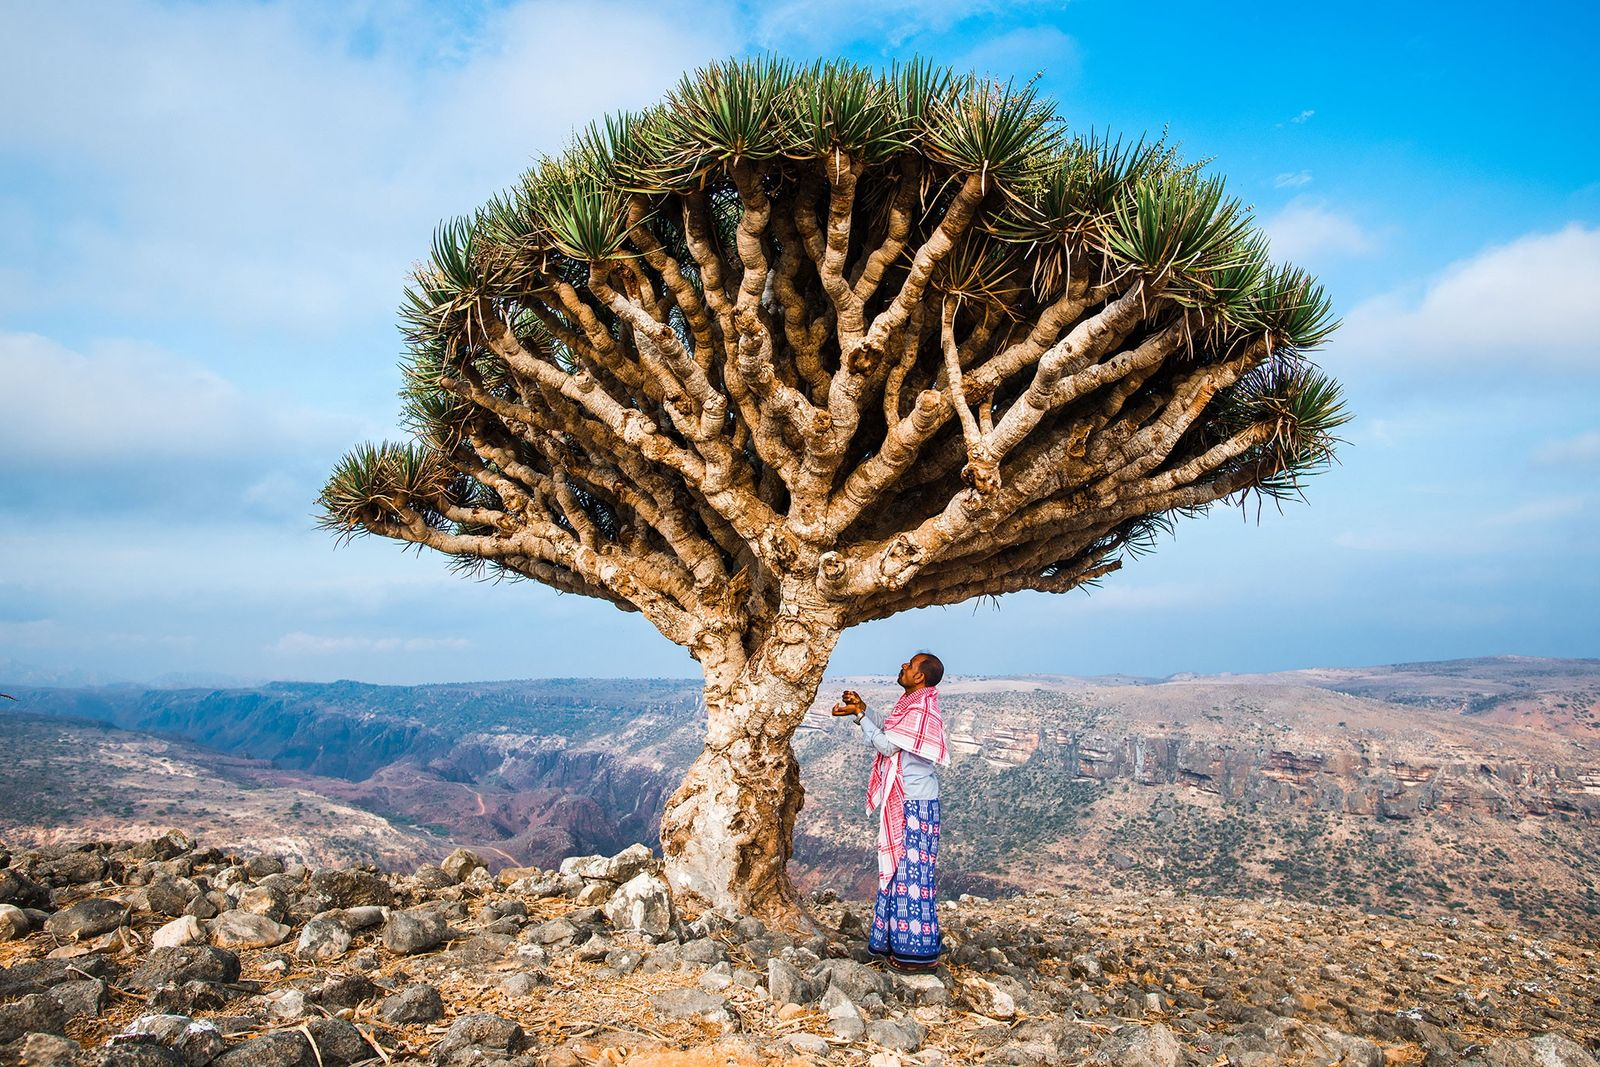 Explore Socotra, Yemen's 'Dragon's Blood Island'